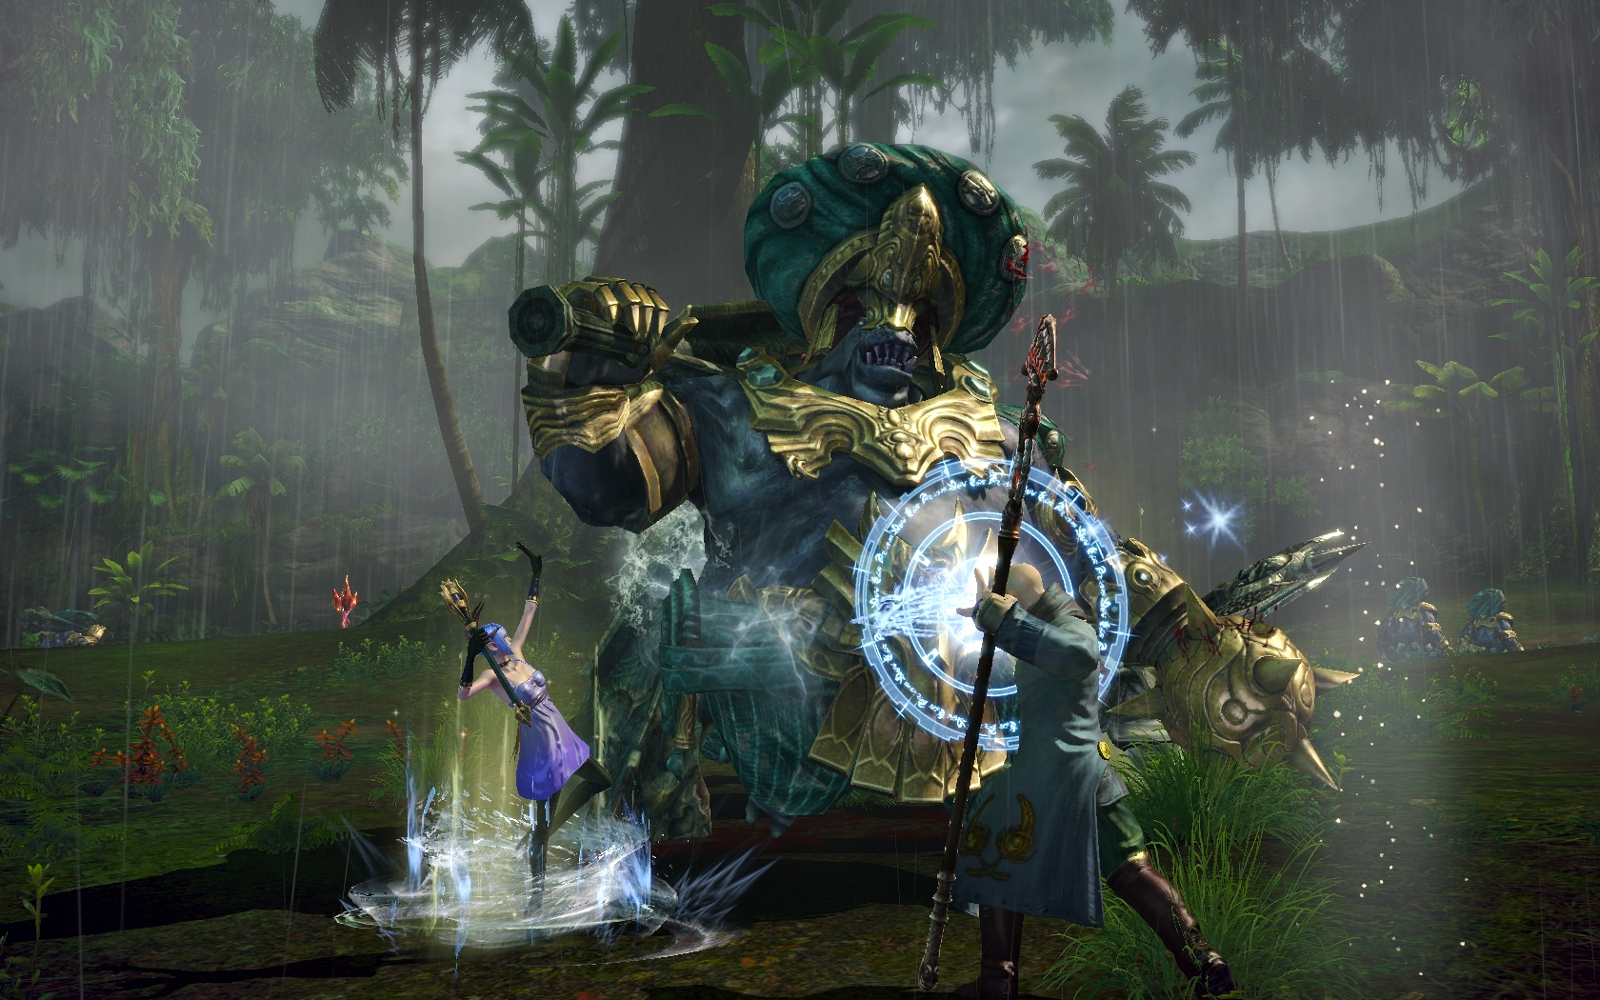 Malware scare forces five year old MMO